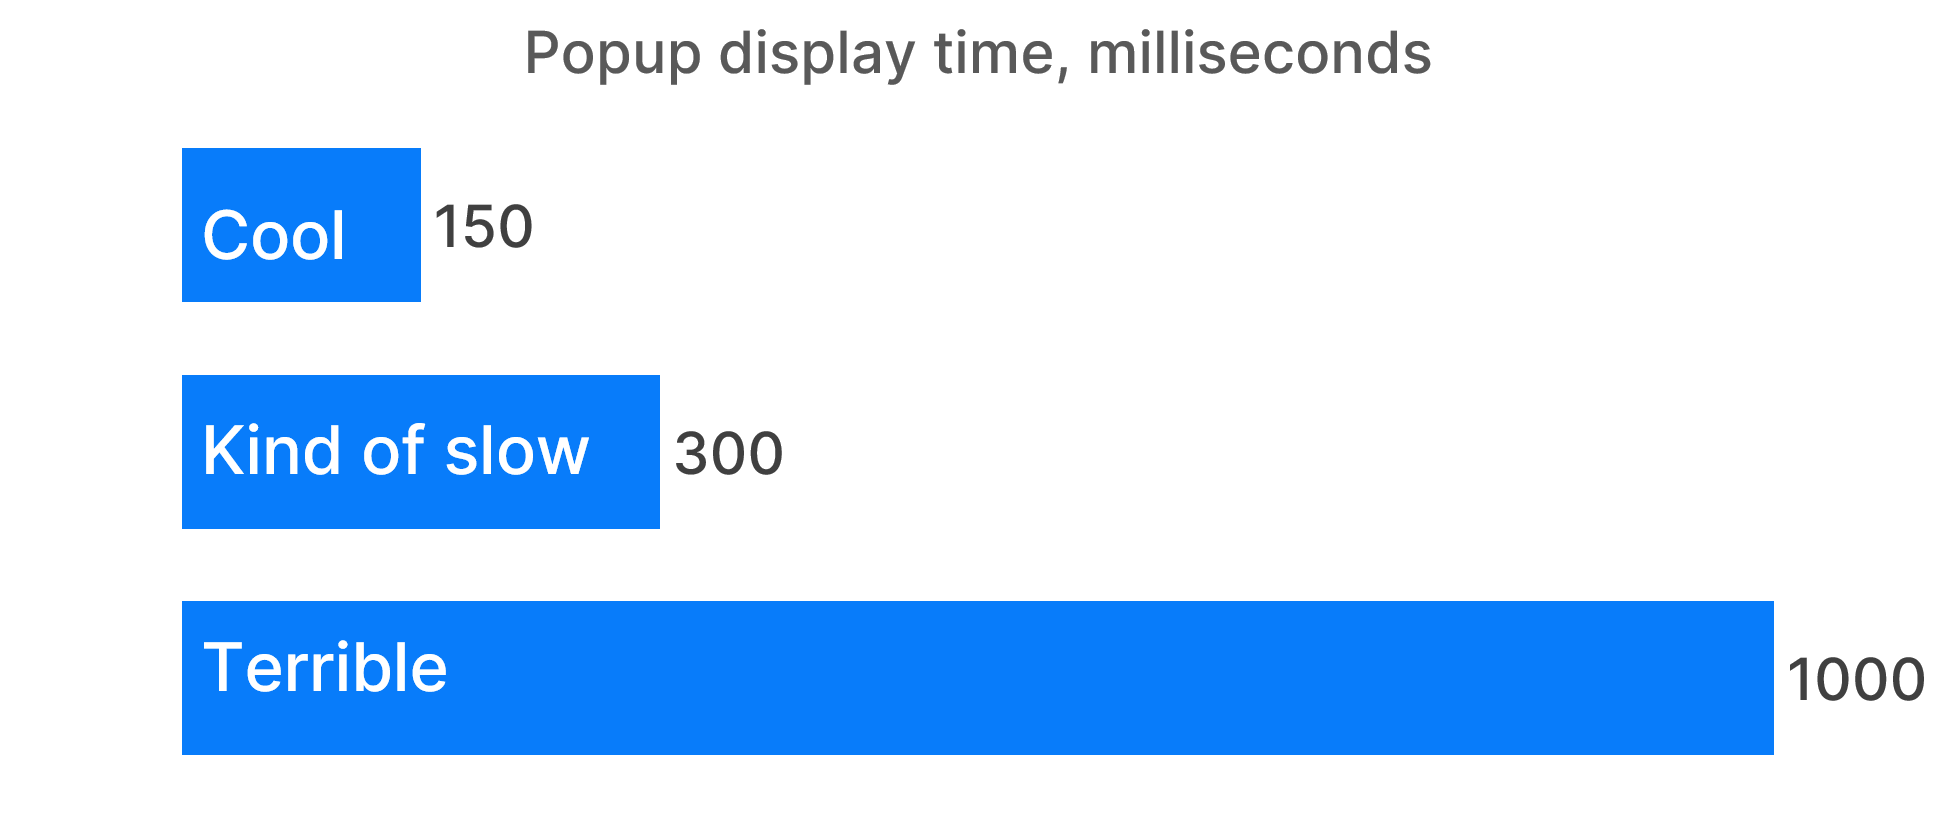 A bar chart about the popup display time in milliseconds. It contains three numbers. 150 milliseconds is called cool. 300 milliseconds is called kind of slow. 1000 milliseconds is called terrible.